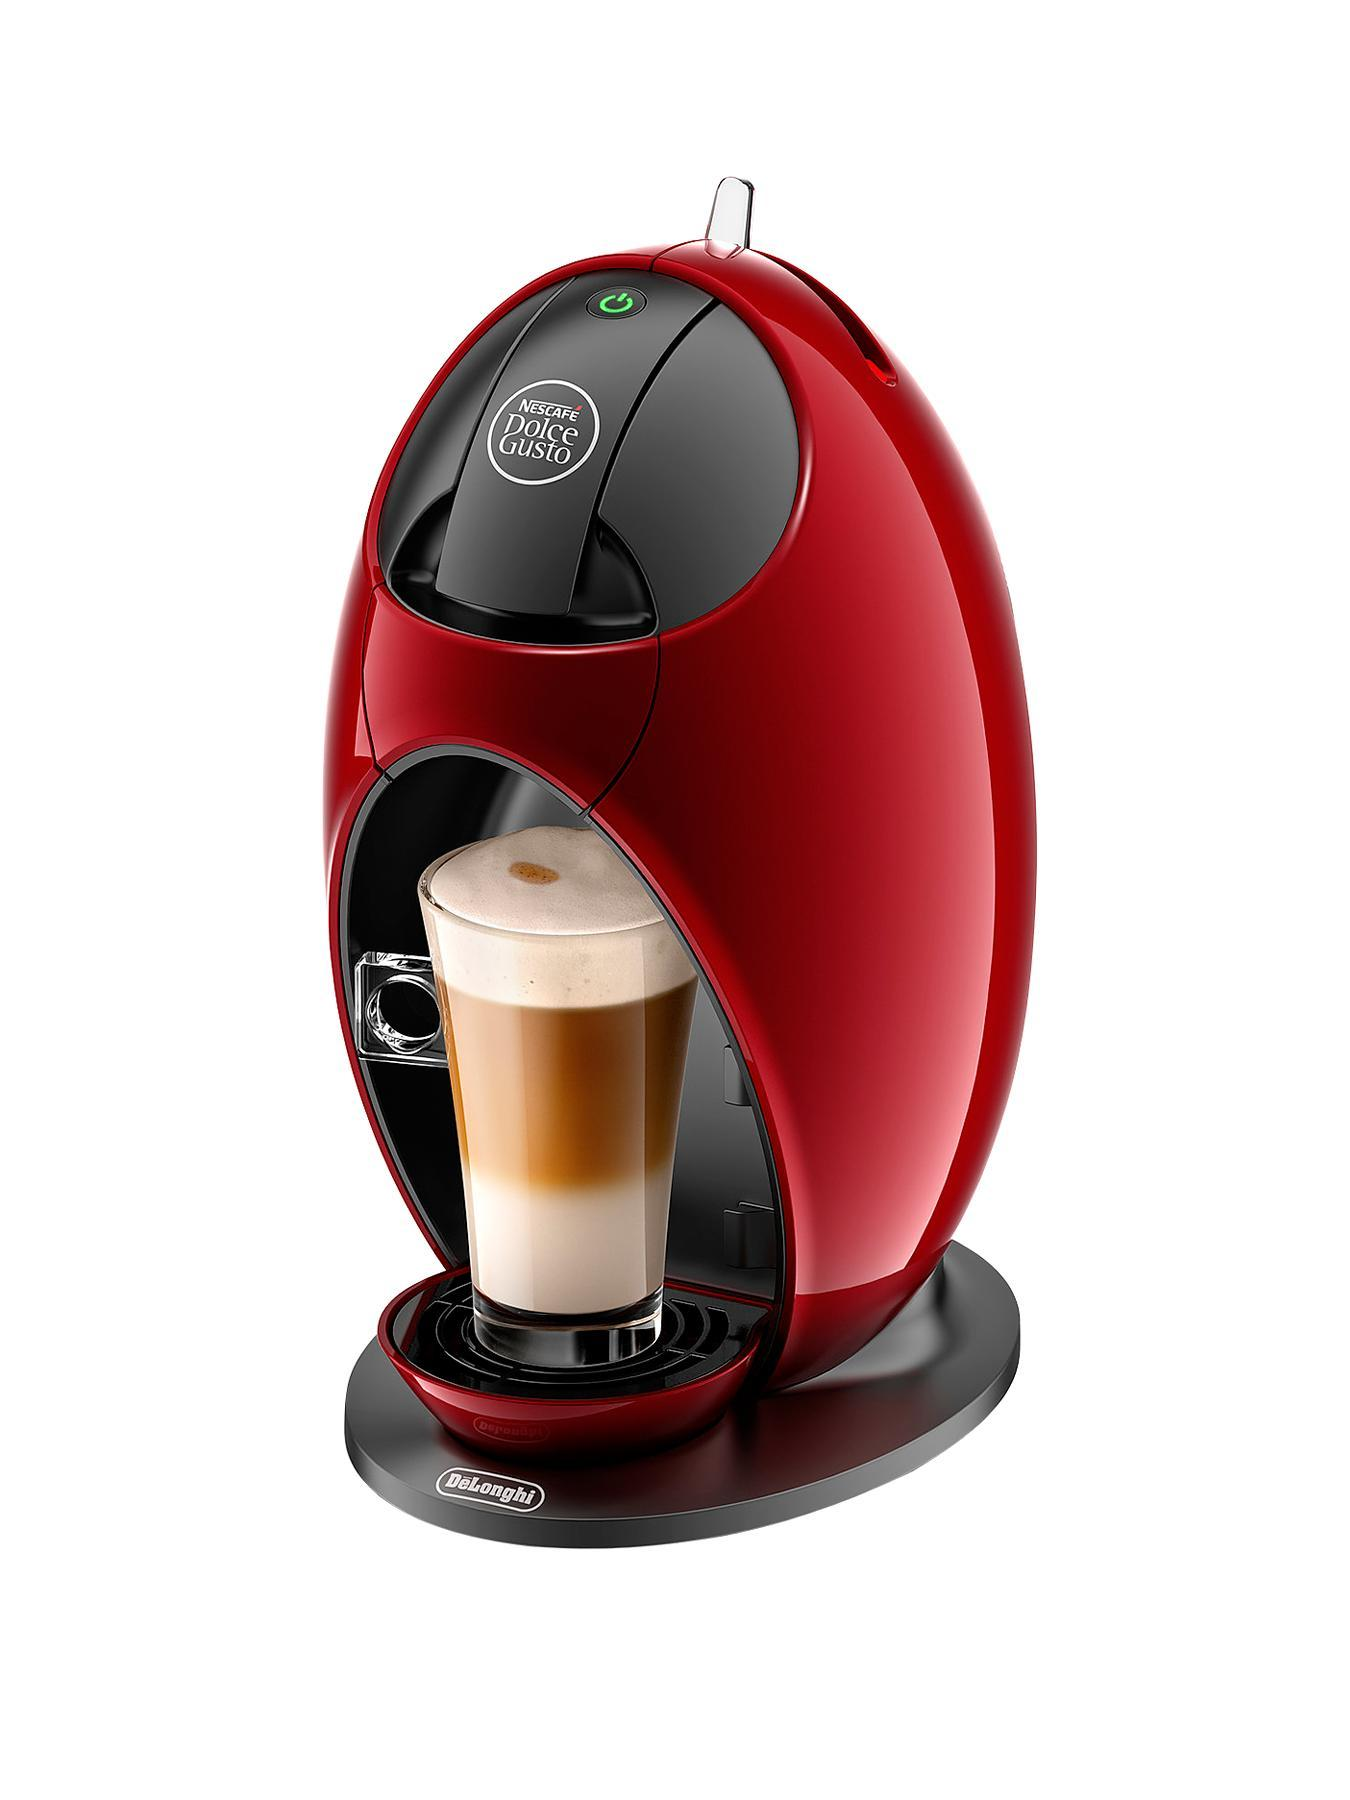 cheap dolce gusto coffee machines with krups by nescafe. Black Bedroom Furniture Sets. Home Design Ideas